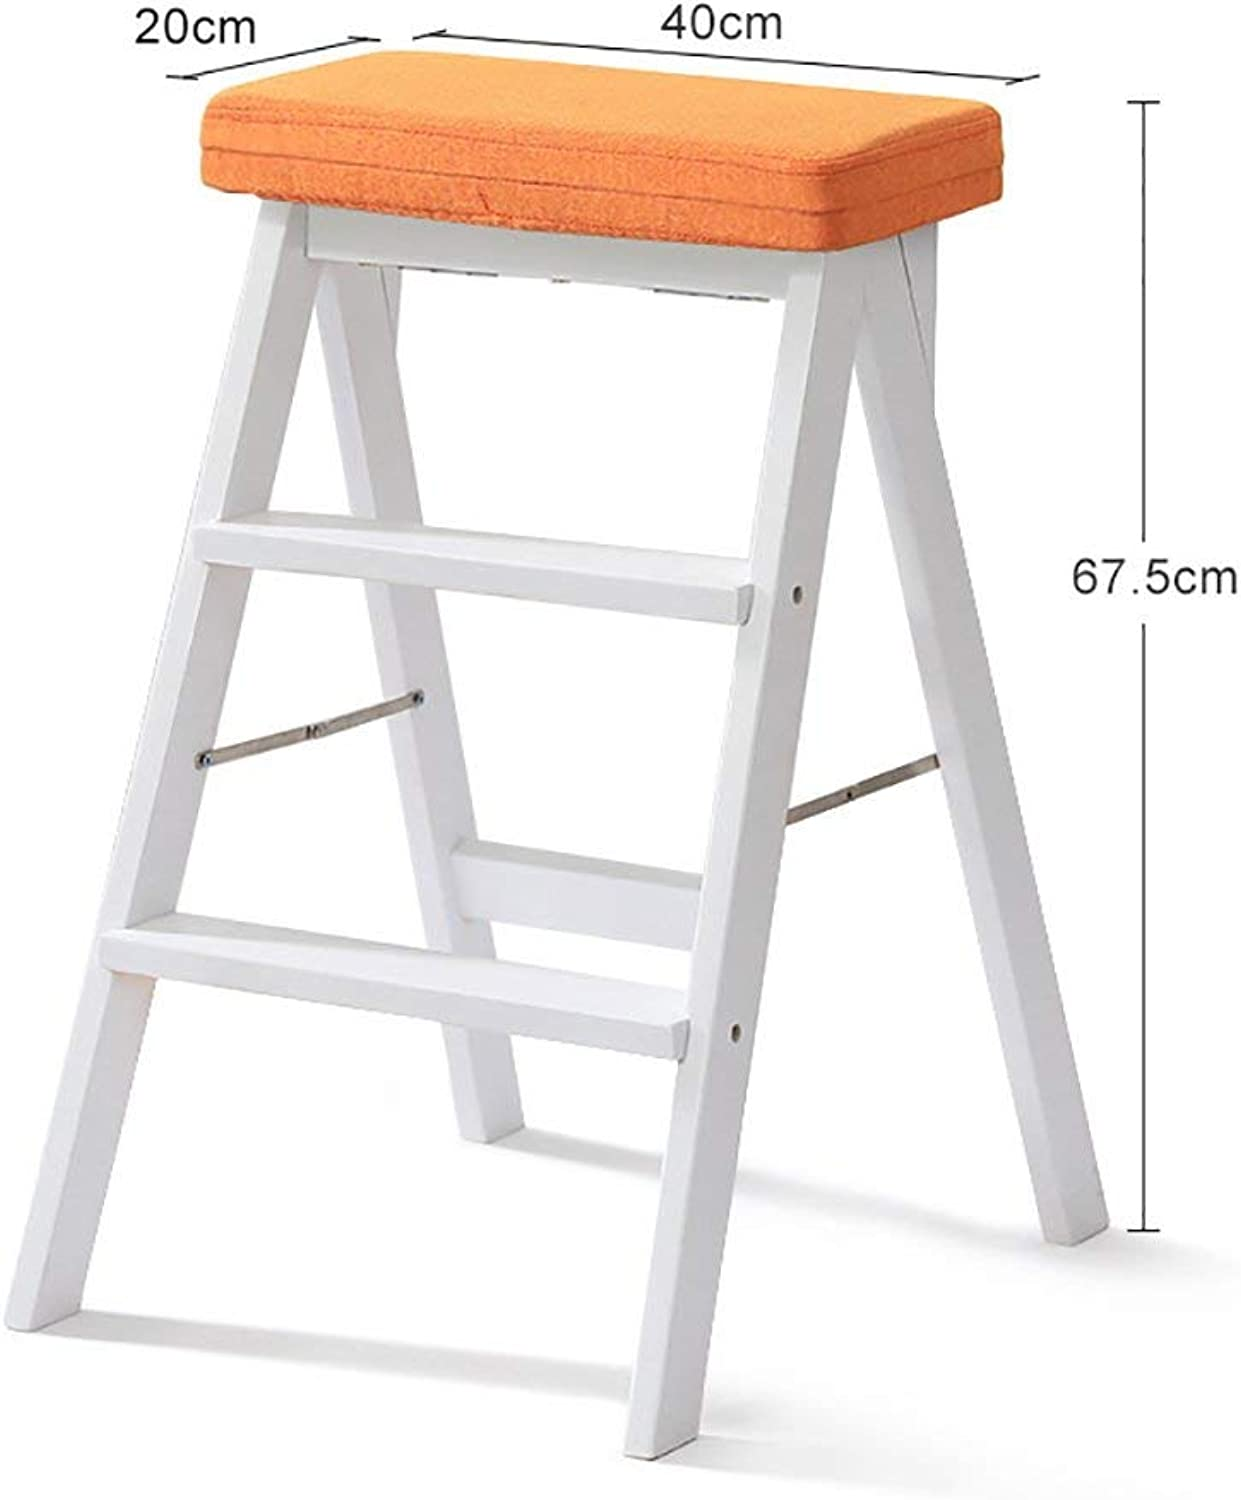 DEED Creative shoes Stool-Foldable Stool Stool Solid Wood Ladders Adult Kitchen Multifunction High Bench,Home Stool